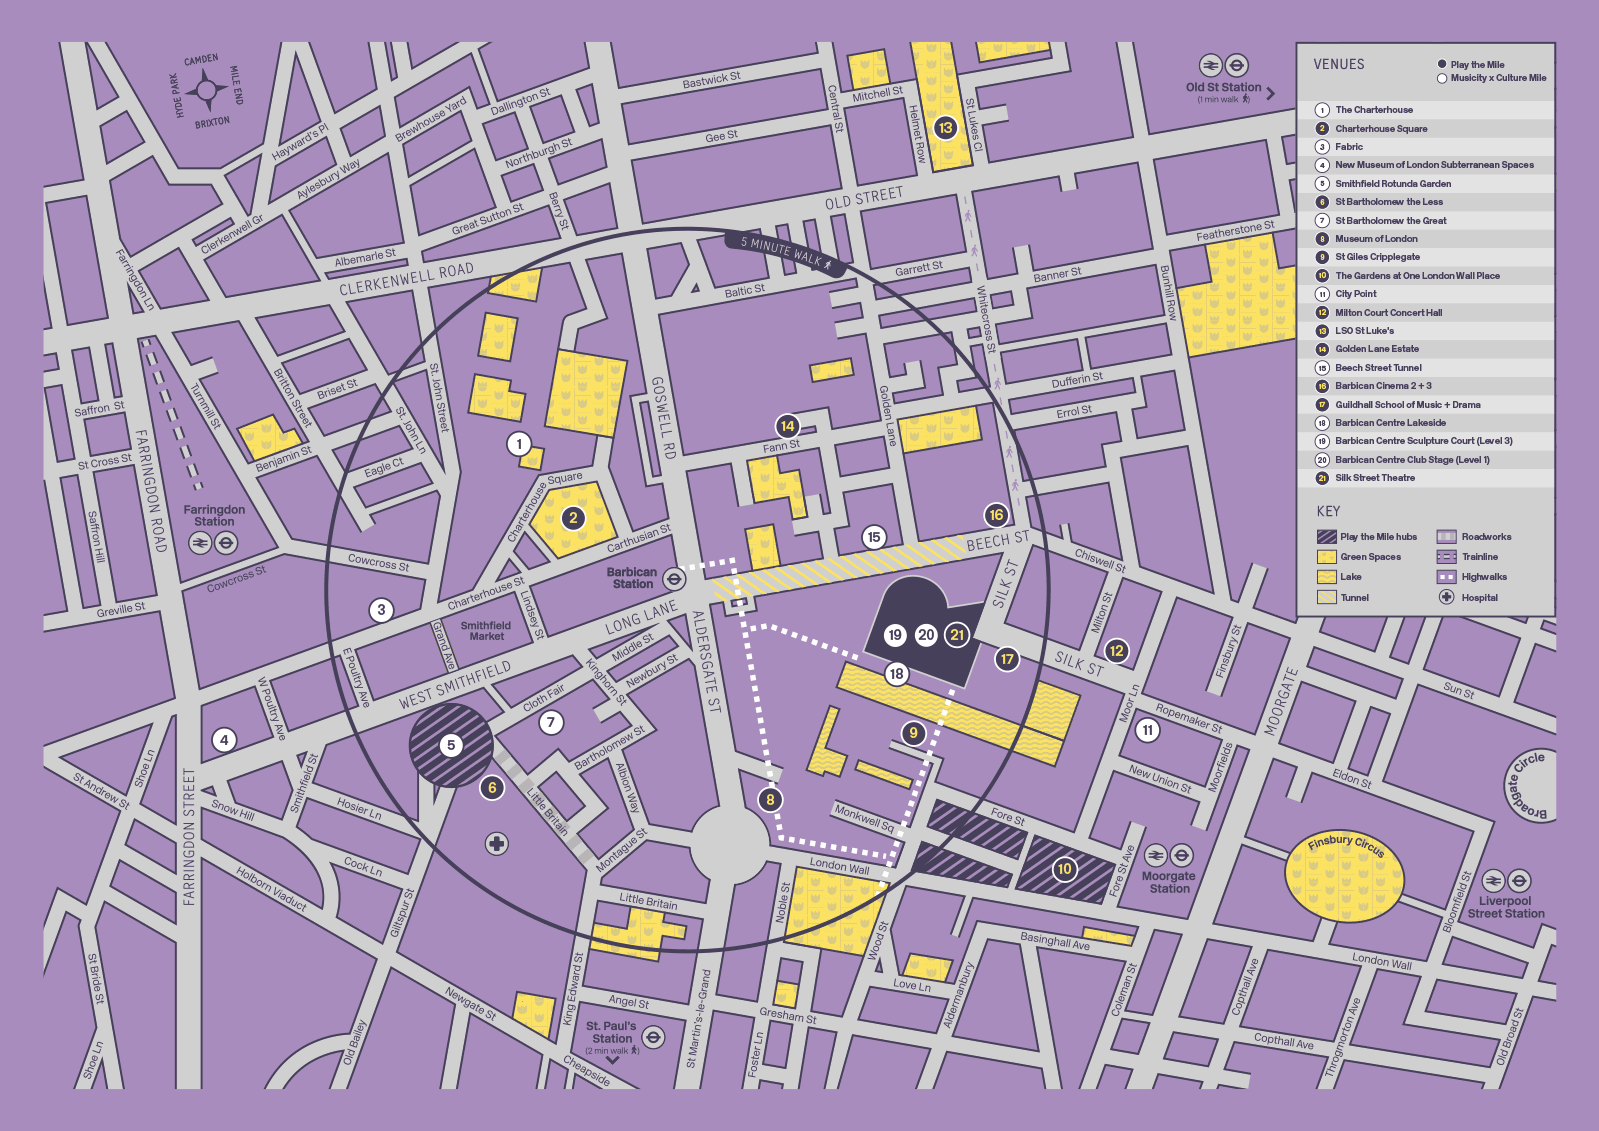 Map of Culture Mile events